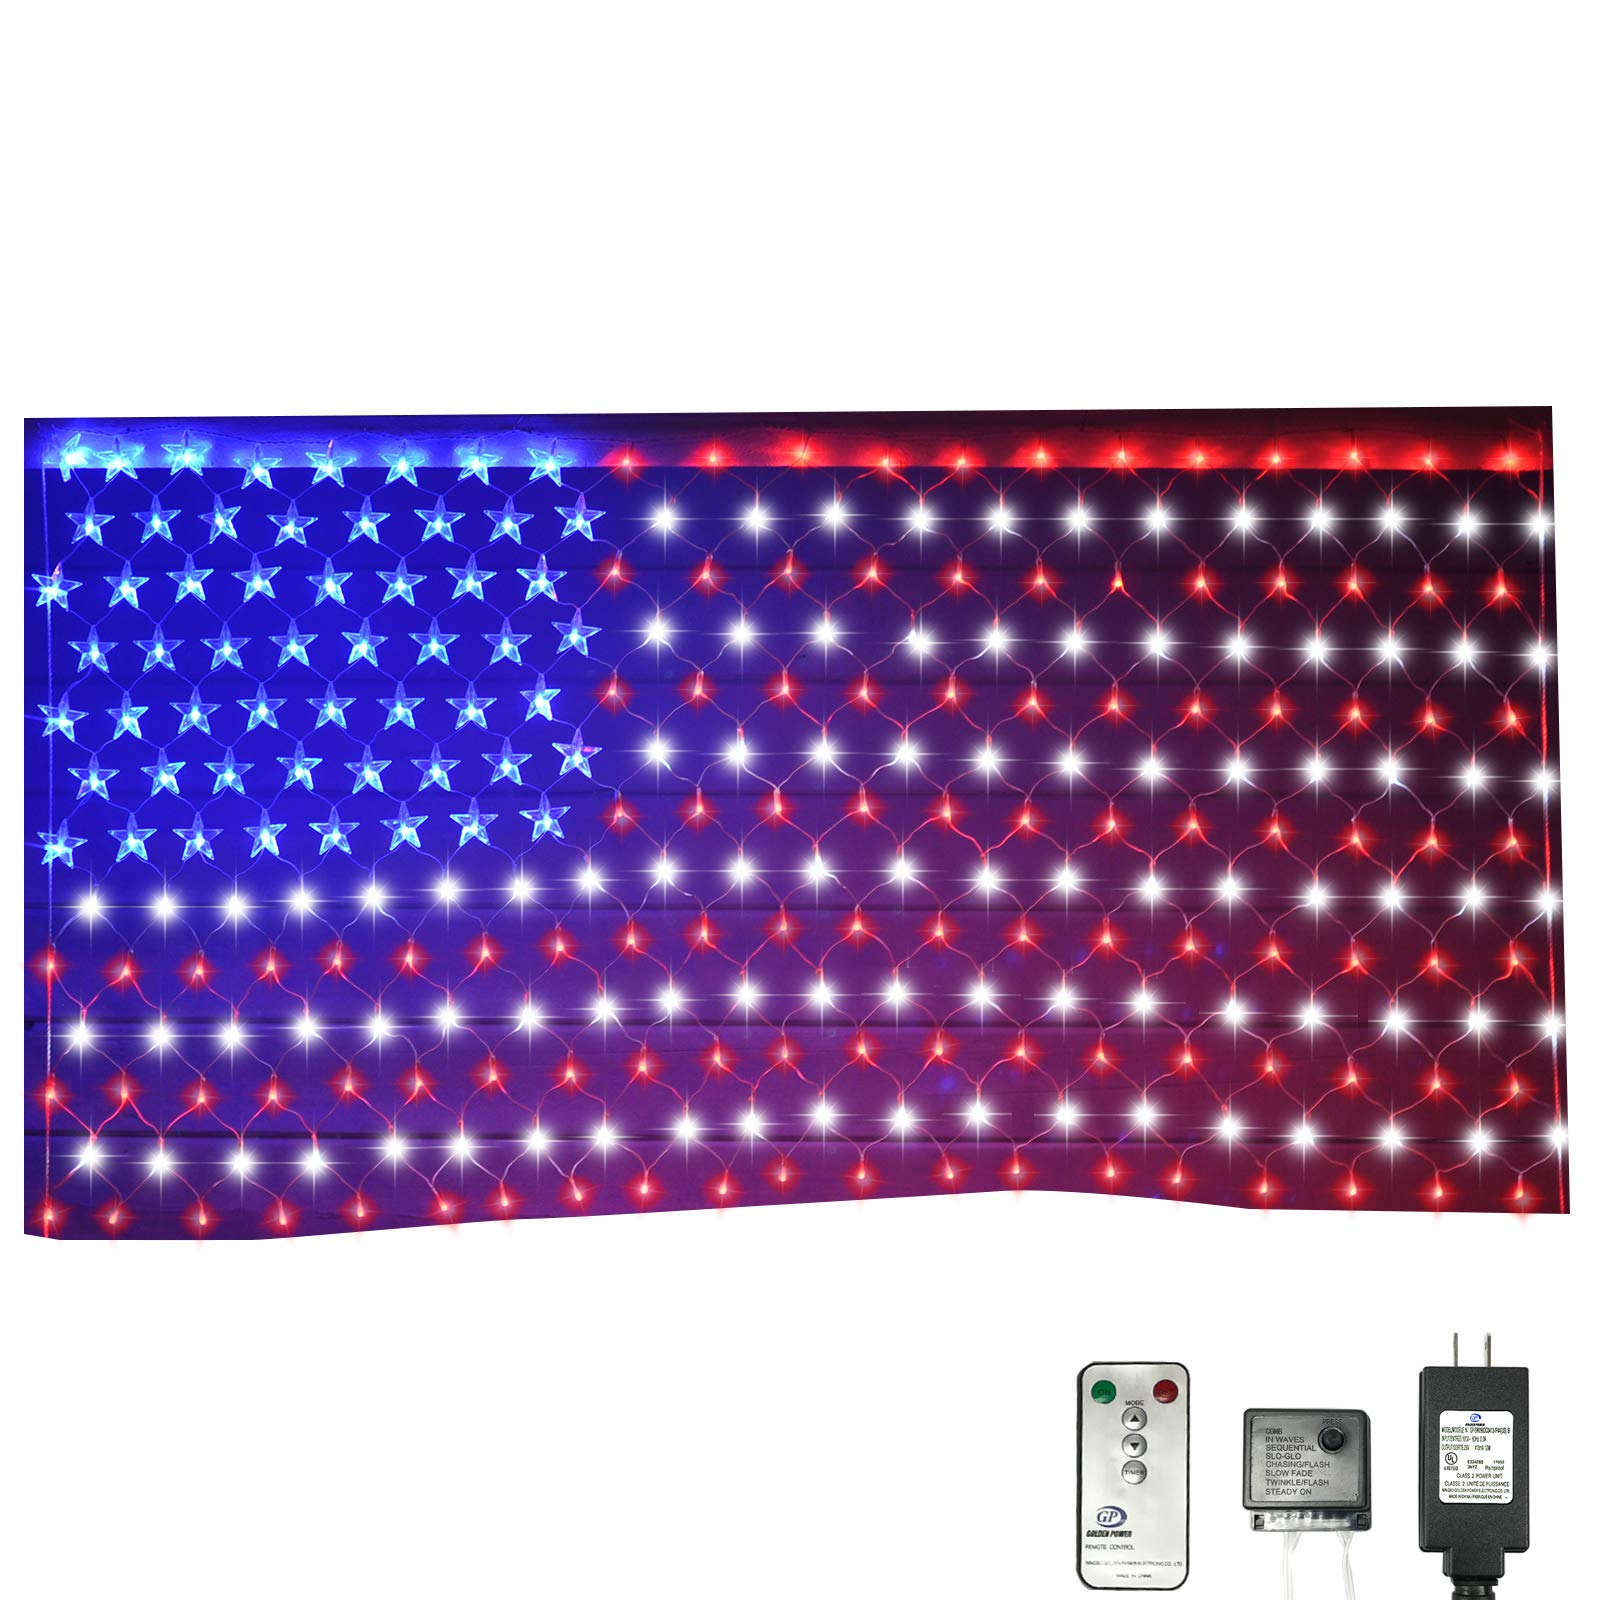 Russell Decor Patriotic decor Memorial Day USA Flag Net Lights Independence Day 4th of July Stars and Stripes Wireless Remote Control Yard Garden Decoration Low voltage 24V